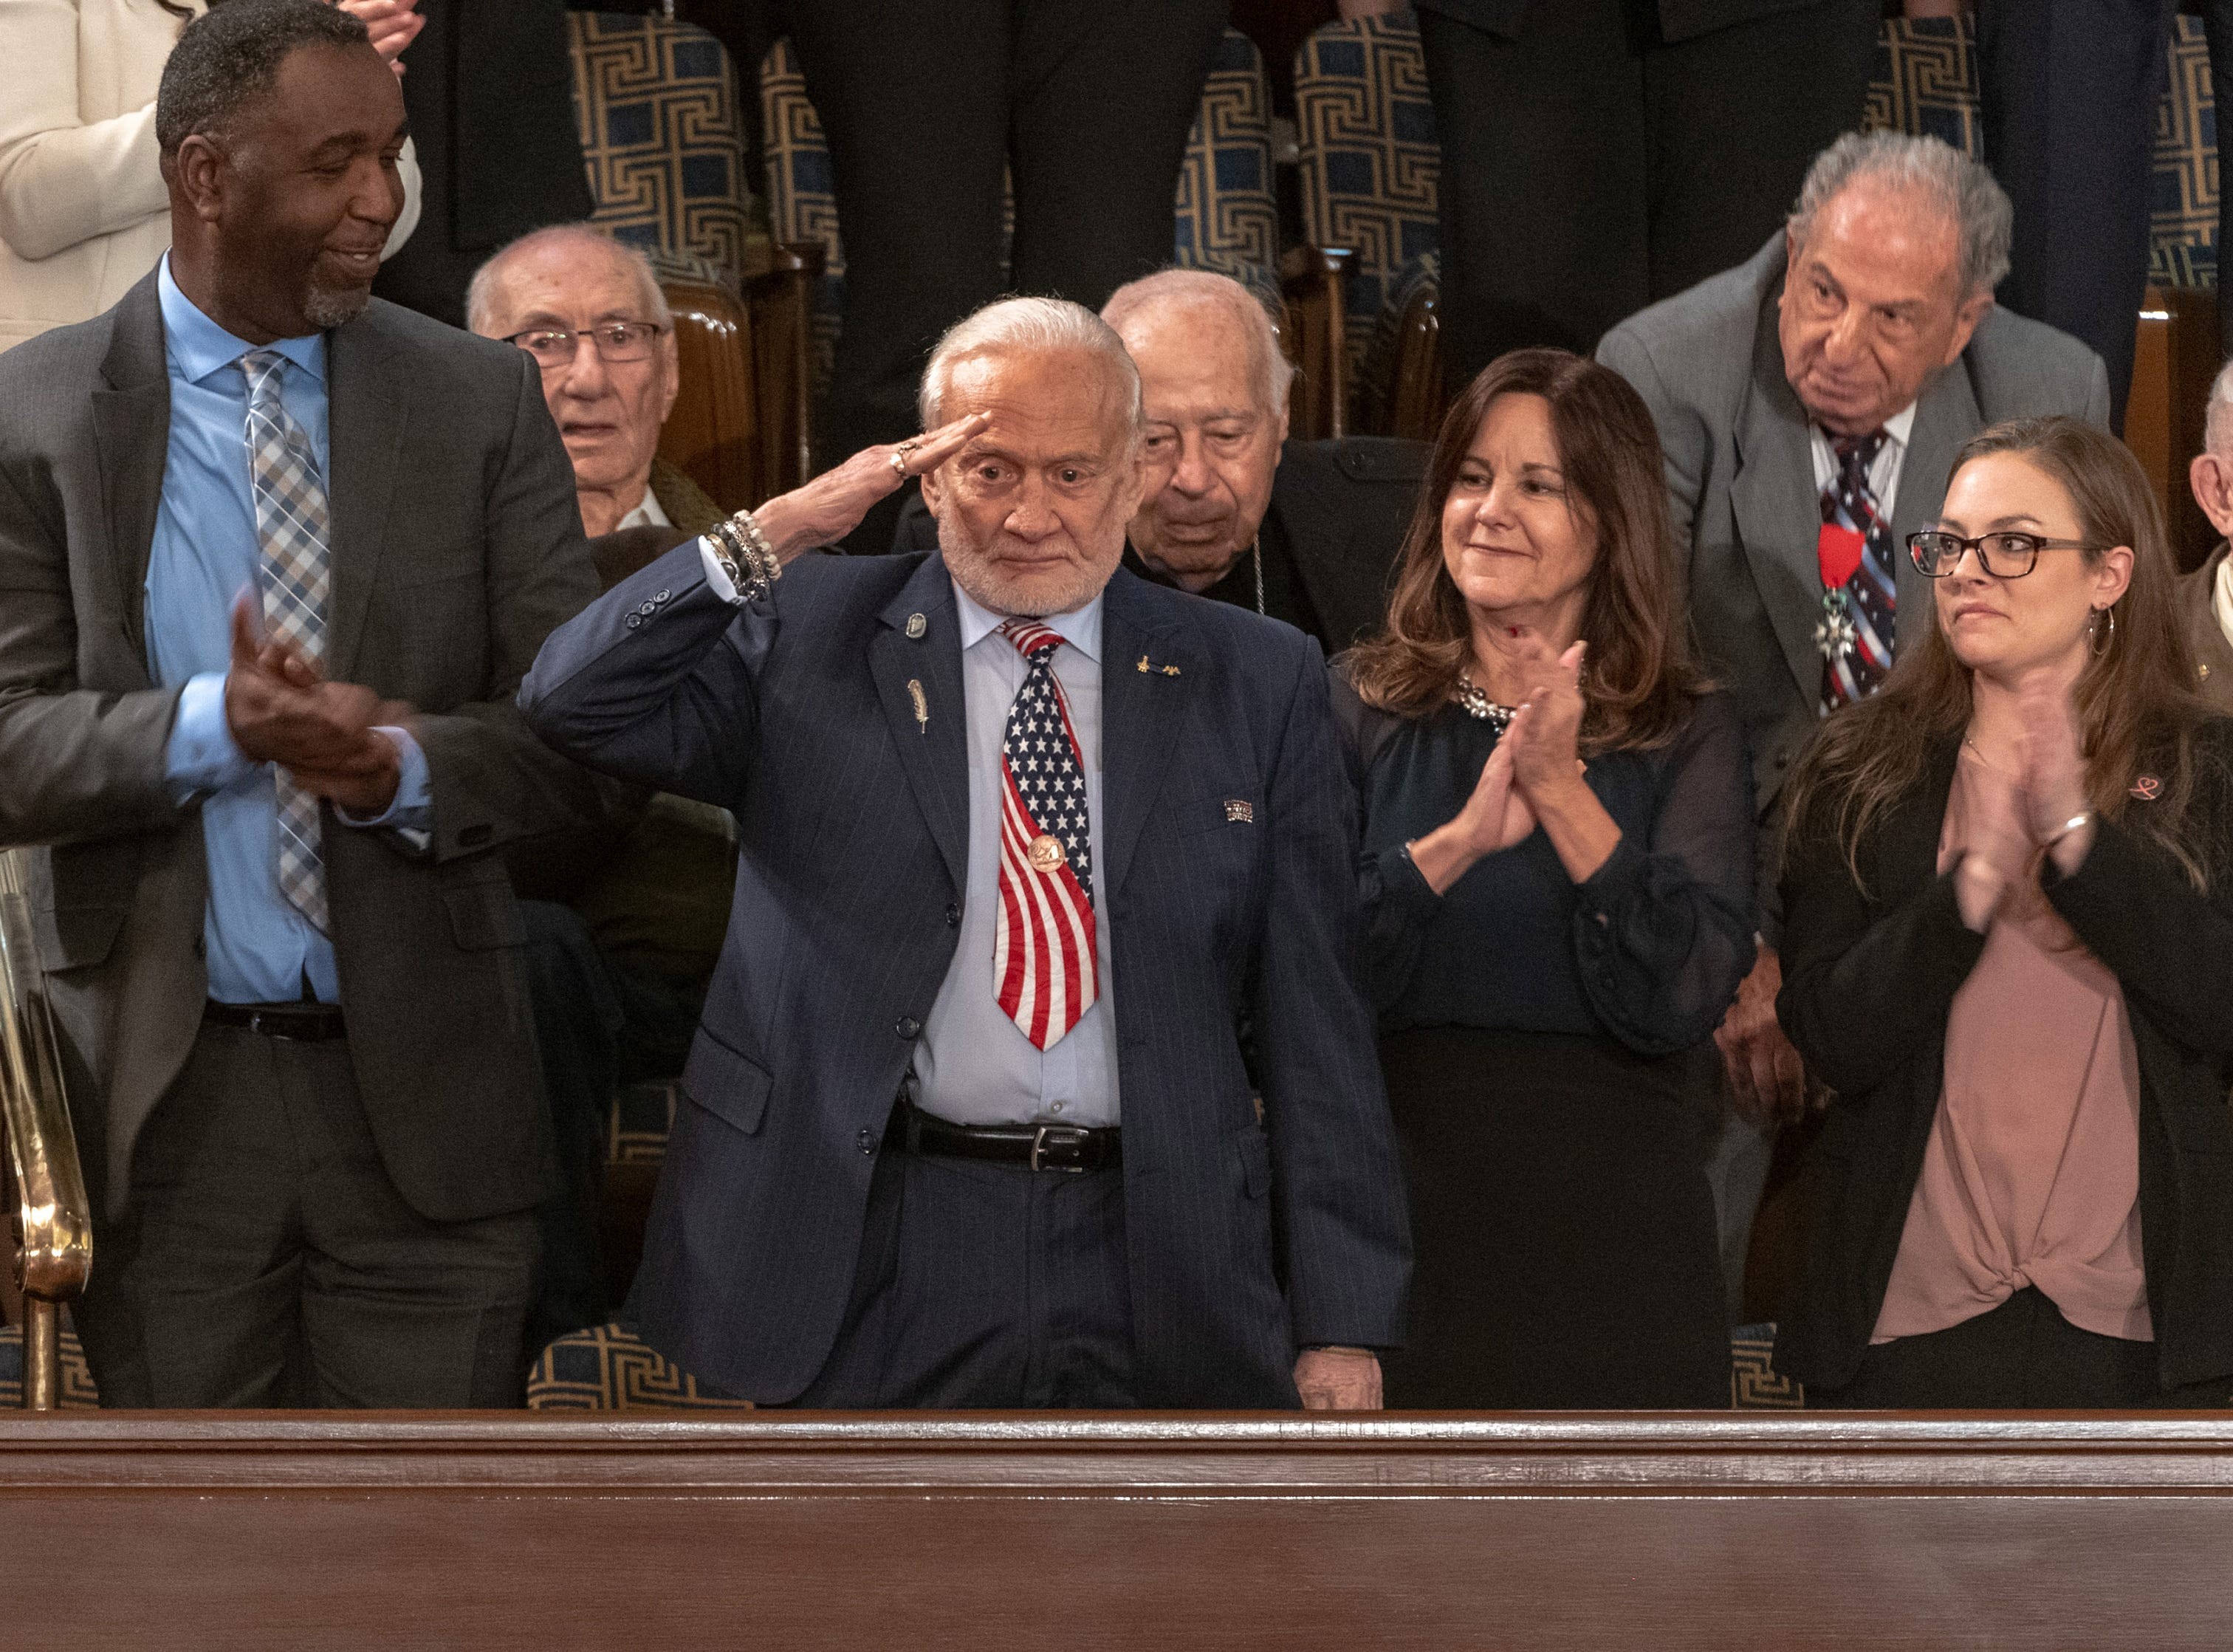 Former Aastronaut Buzz Aldrin salutes after being introduced at the 2019 State of the Union address in Washington D.C. Feb 5, 2019.